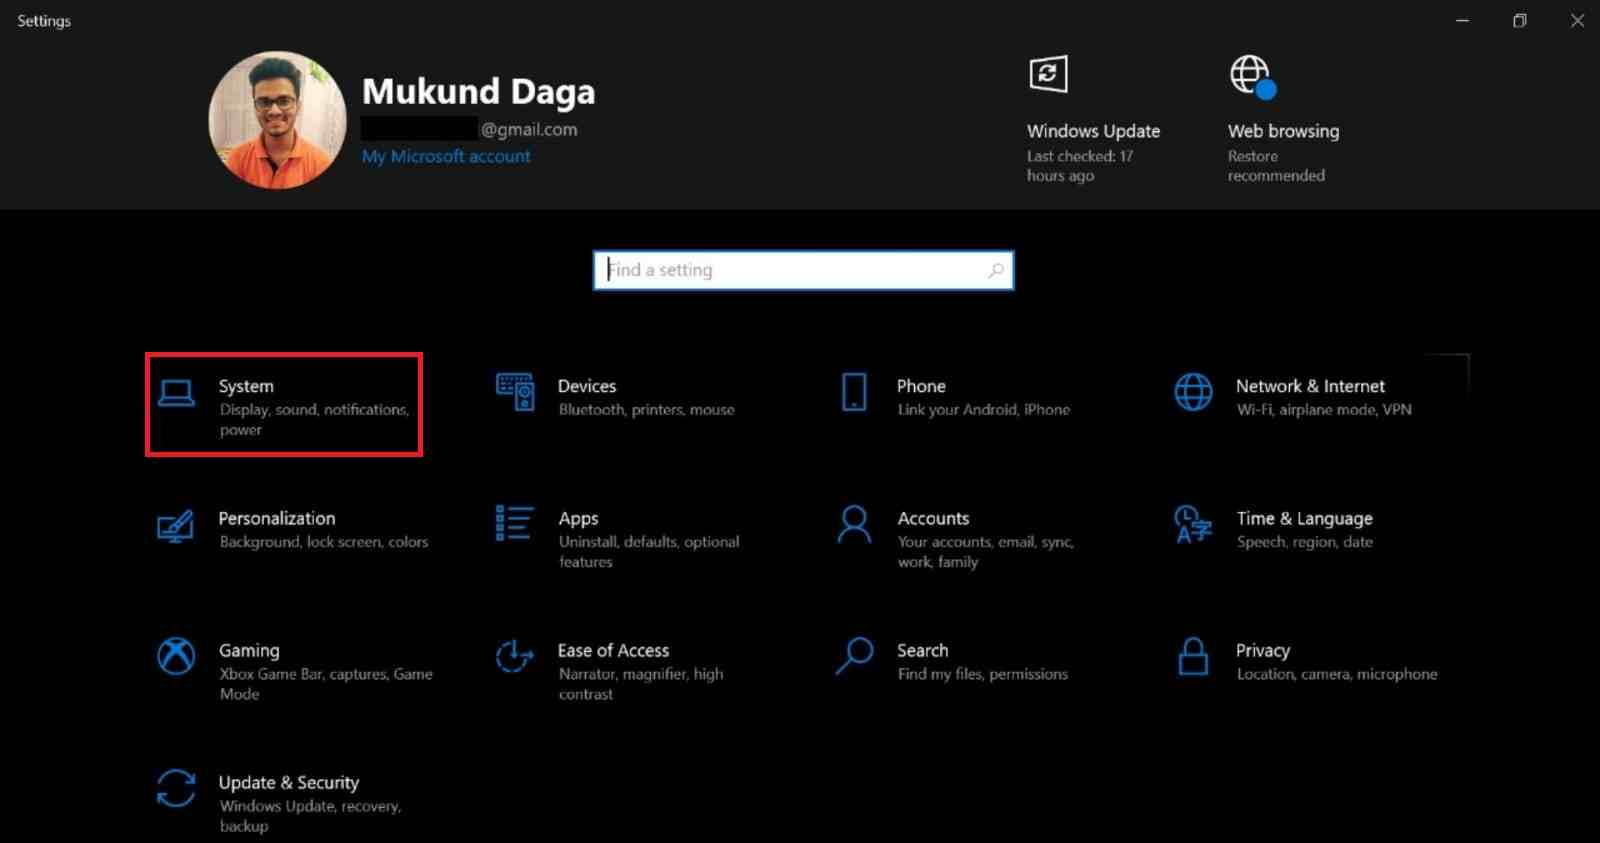 free up hard disk, free up hard disk, best ways to free up storage in windows 10, delete unnecessary files windows 10, how to clear unwanted files on windows 10, free up hard disk space on windows 10